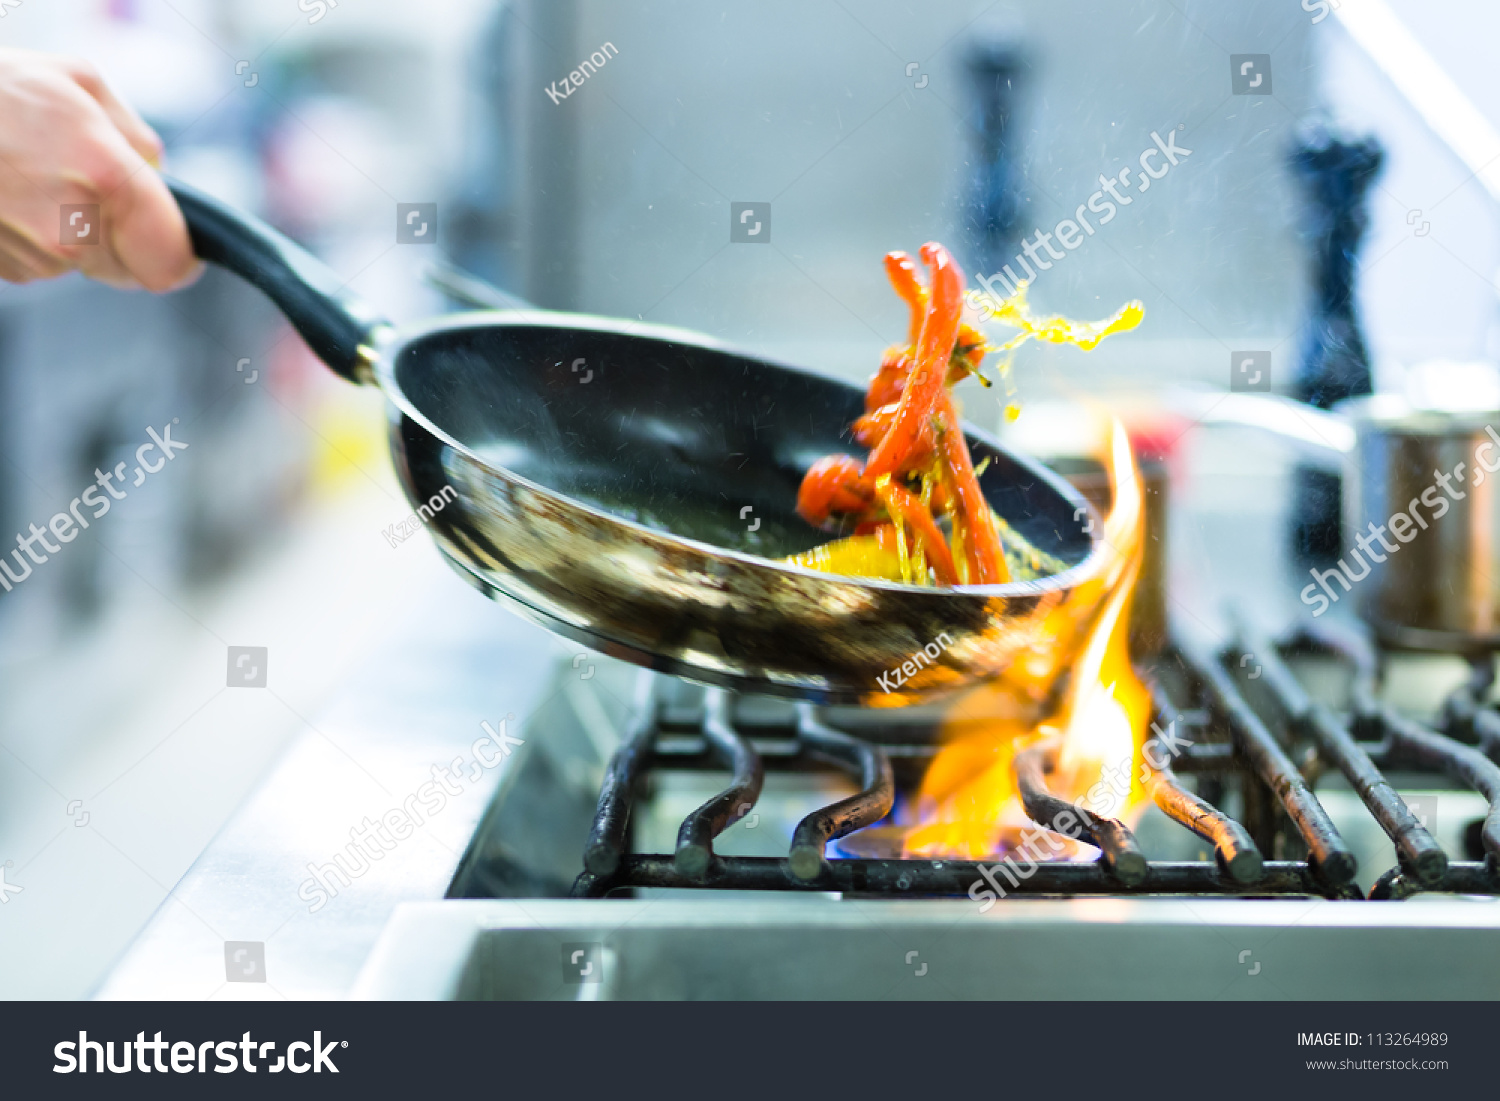 Royalty-free Chef in restaurant kitchen at stove… #113264989 Stock ...